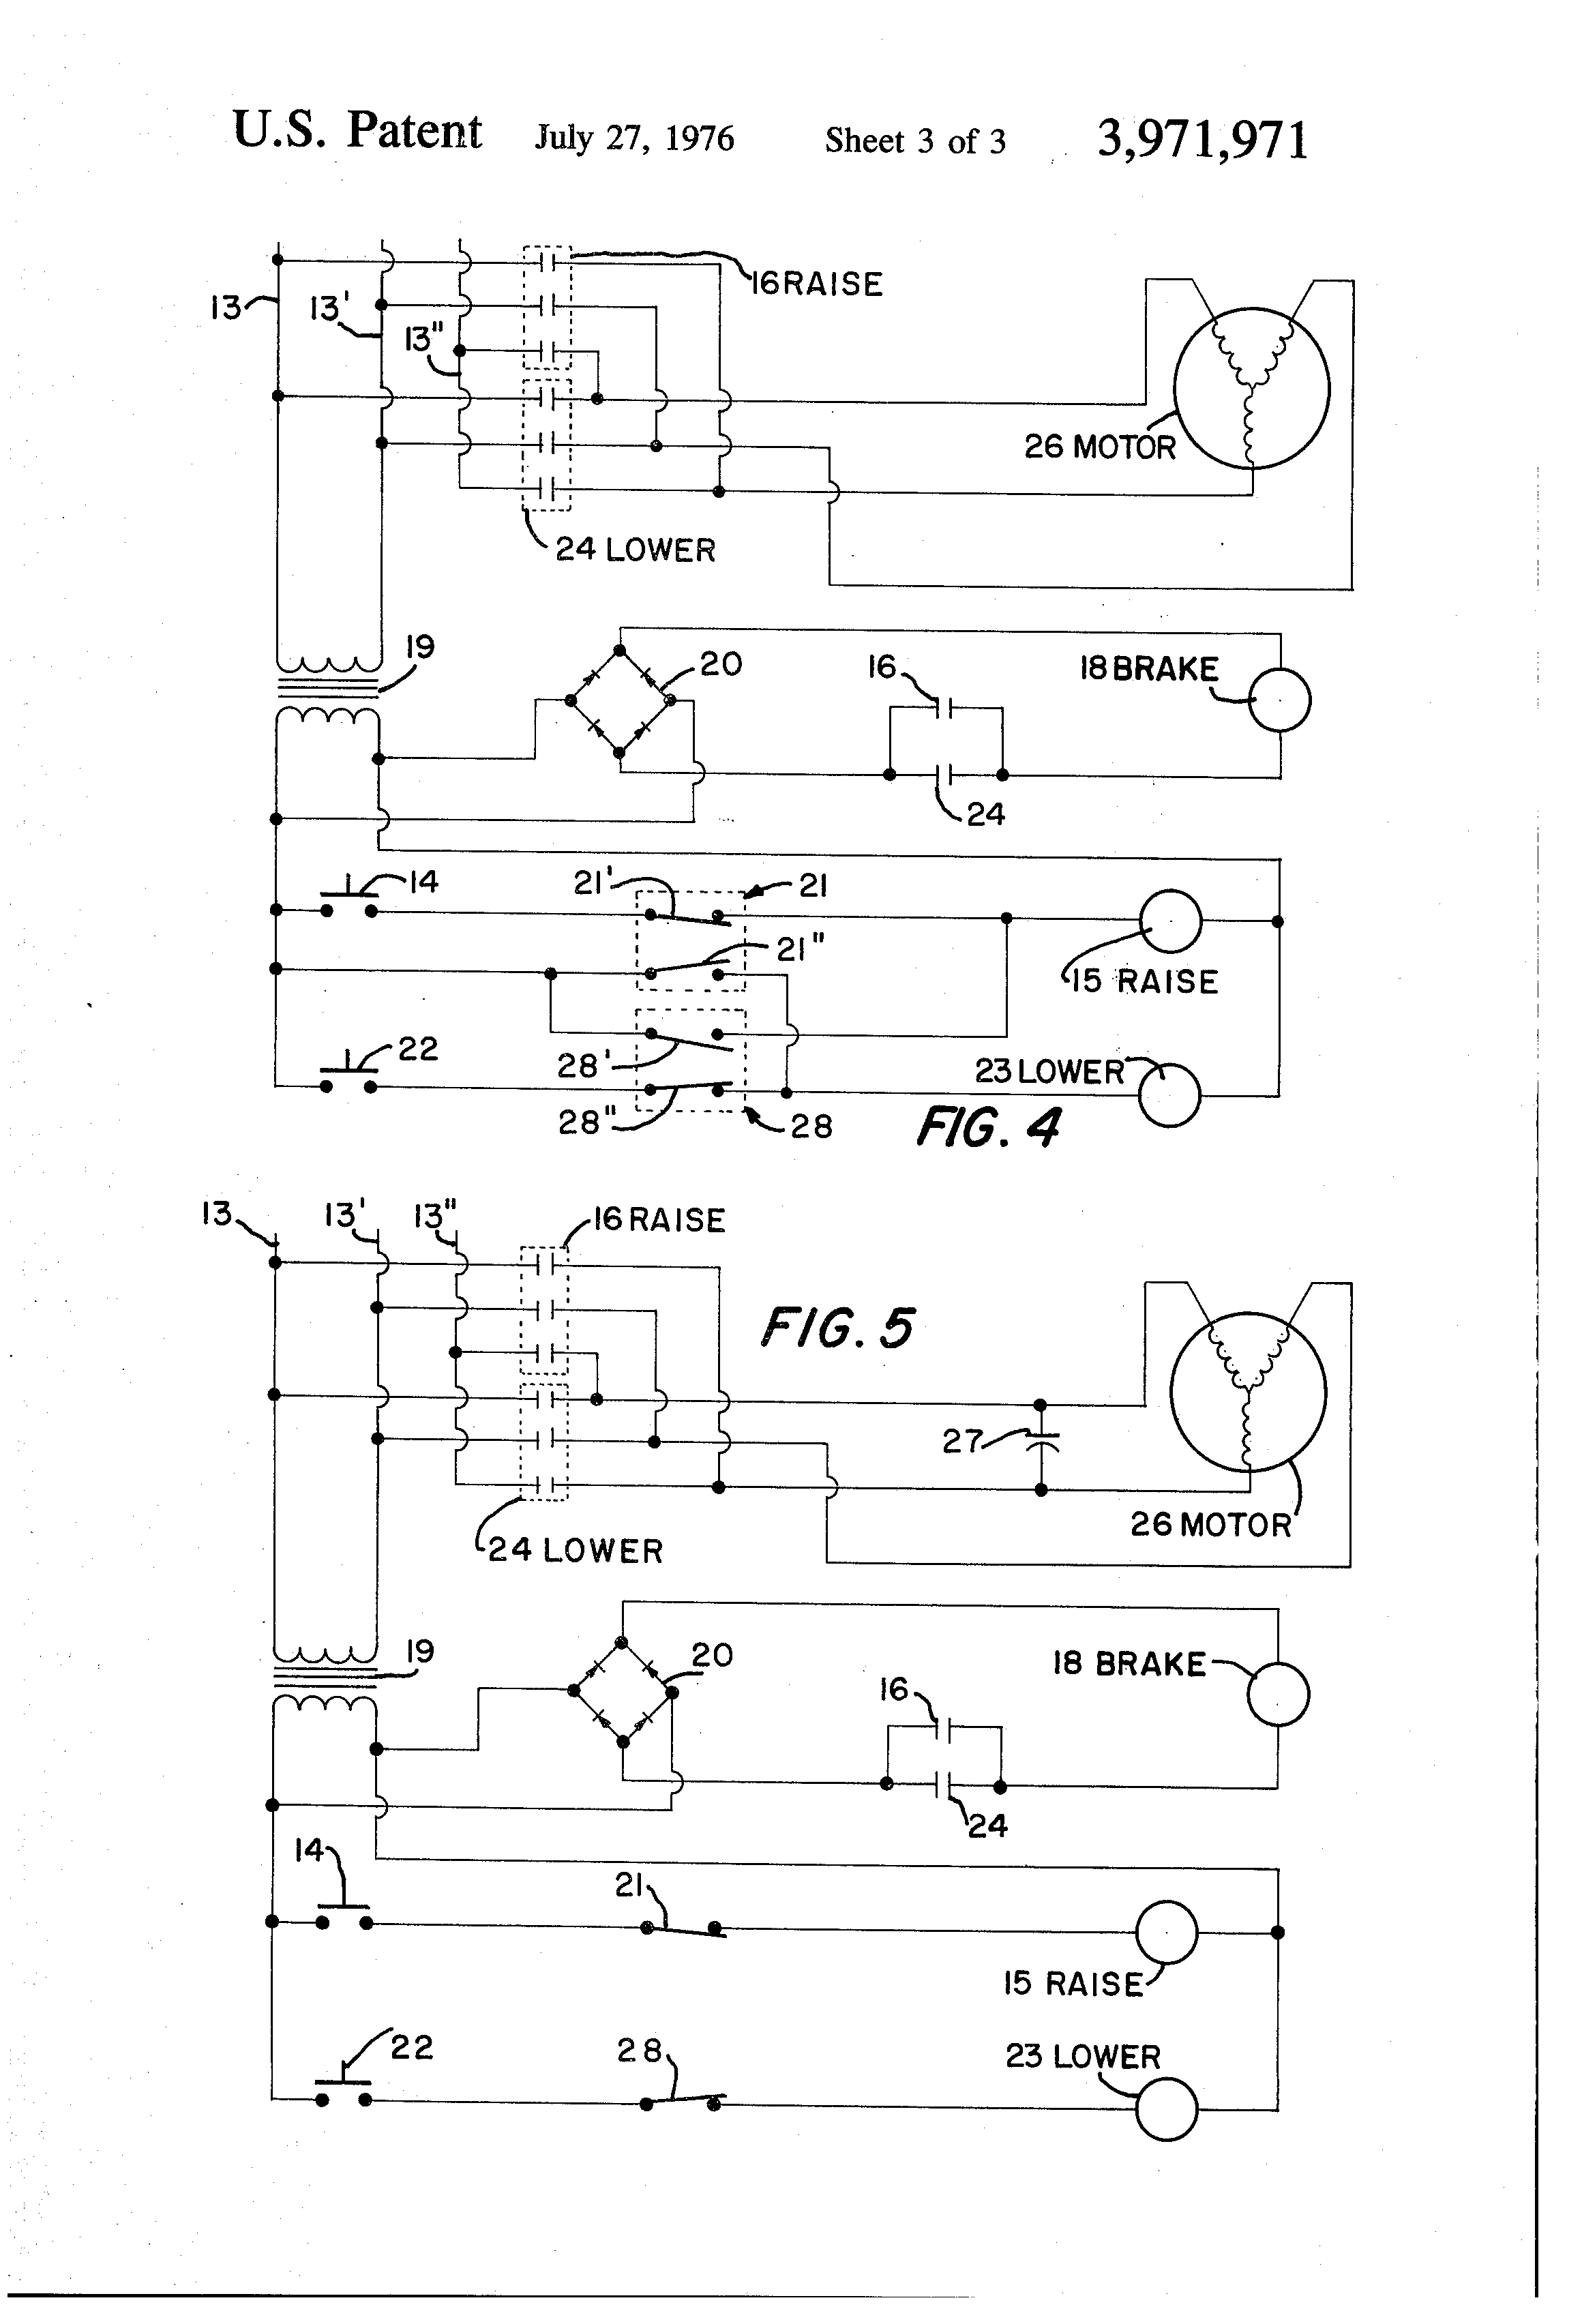 US3971971 3 demag chain hoist wiring diagram wiring diagram and schematic design demag hoist wiring diagram at mifinder.co